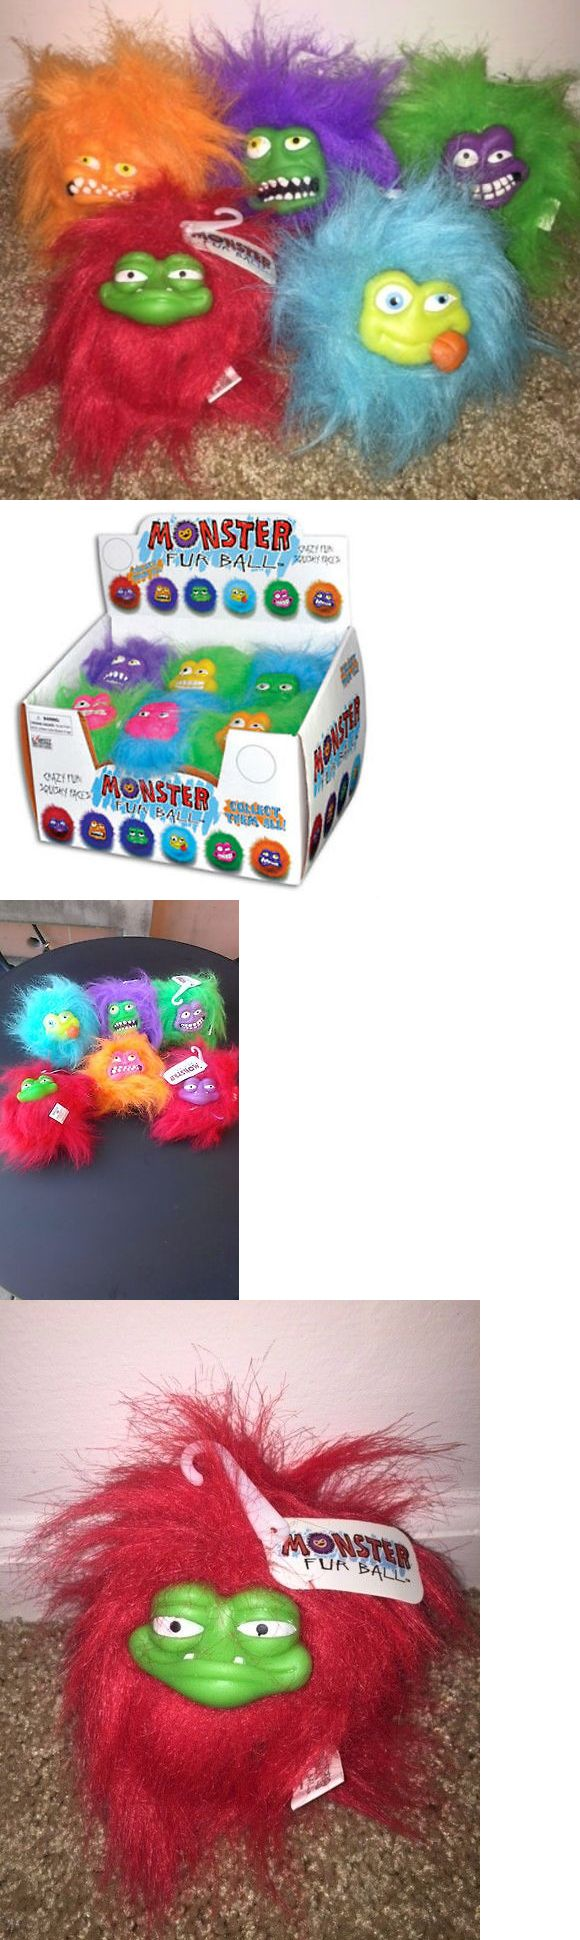 Stuffed Animals Beanbag Plush 51030: Monster Fur Balls Wholesale Lot Of 96 Pieces Novelty Toy For Kids -> BUY IT NOW ONLY: $159.97 on eBay!